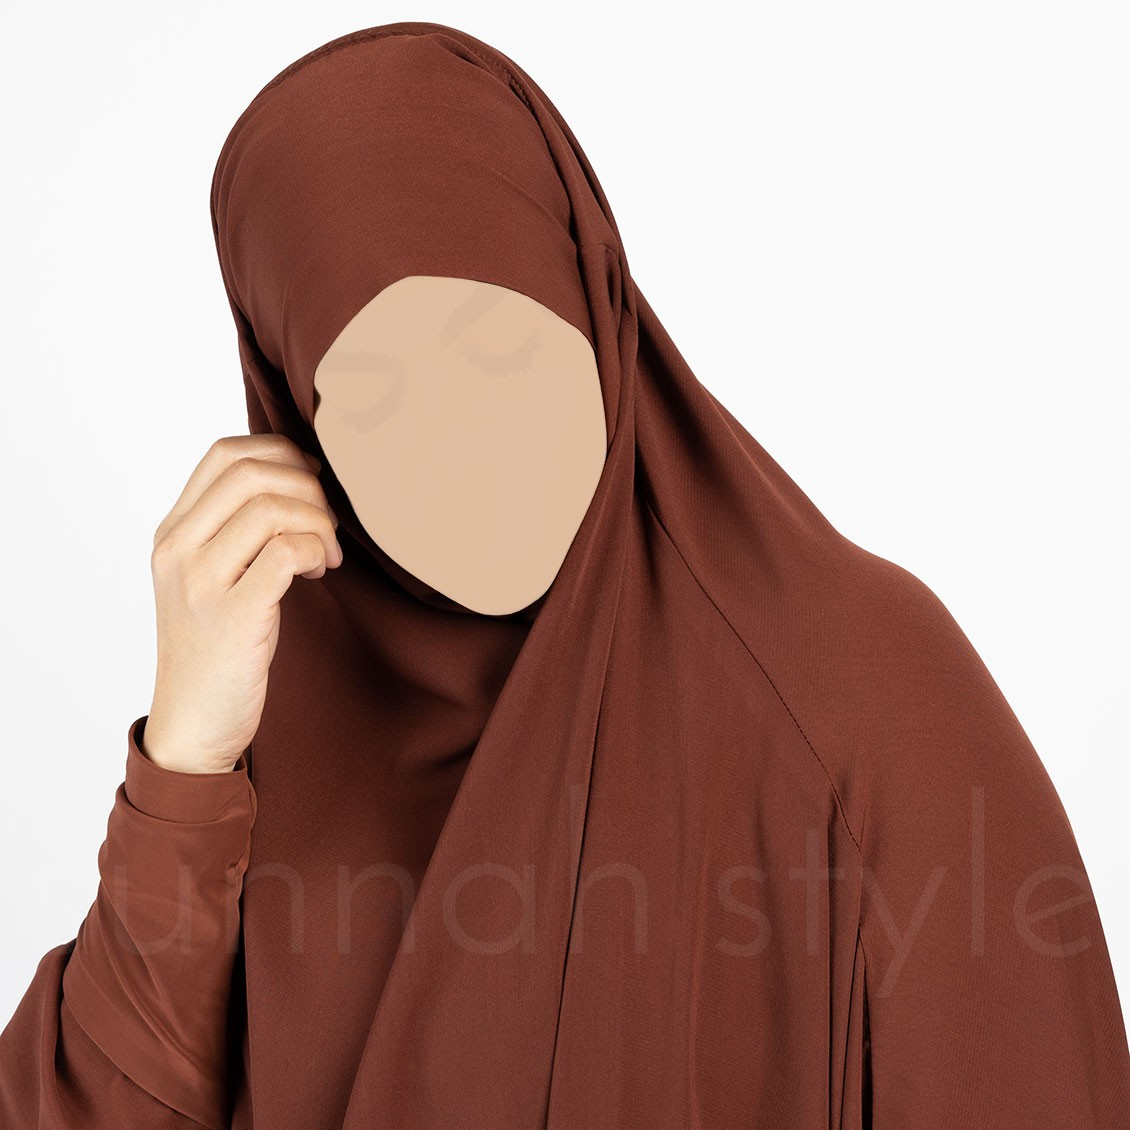 Sunnah Style Plain Full Length Jilbab Dark Amber